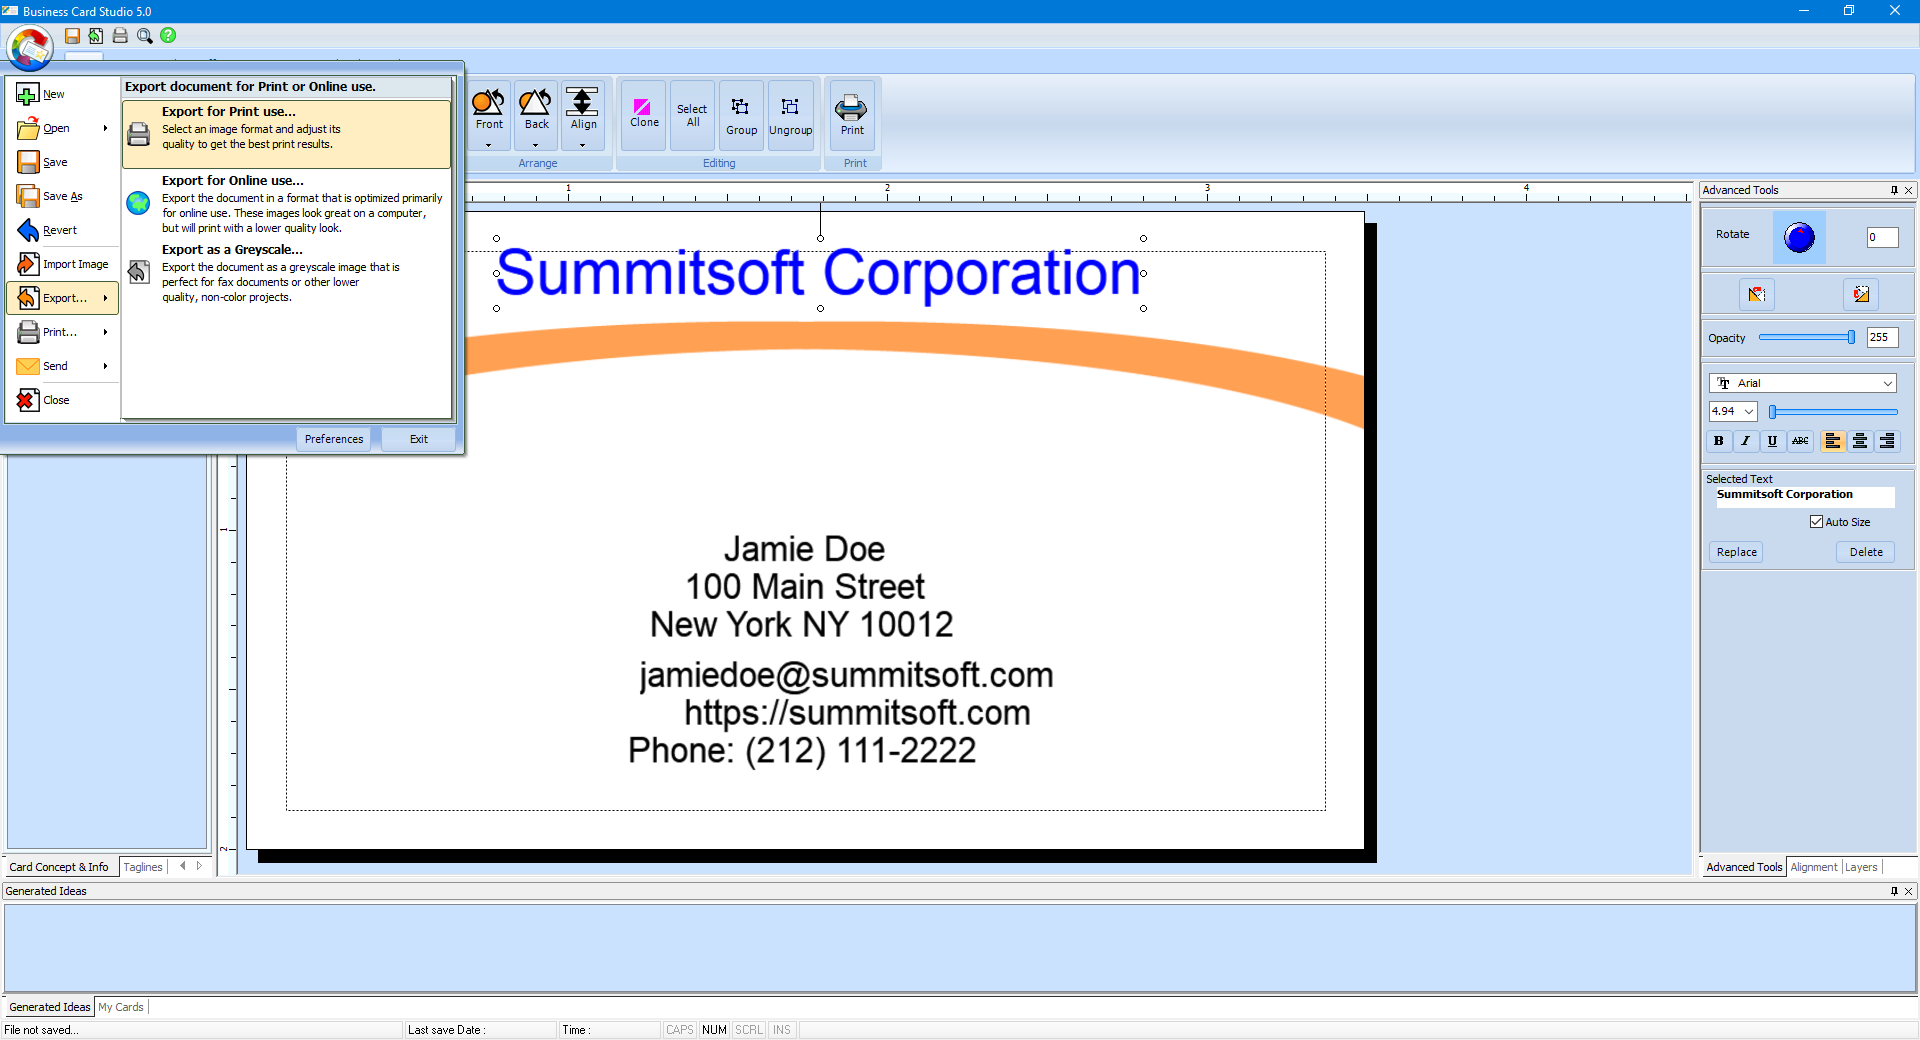 export the business card as an image